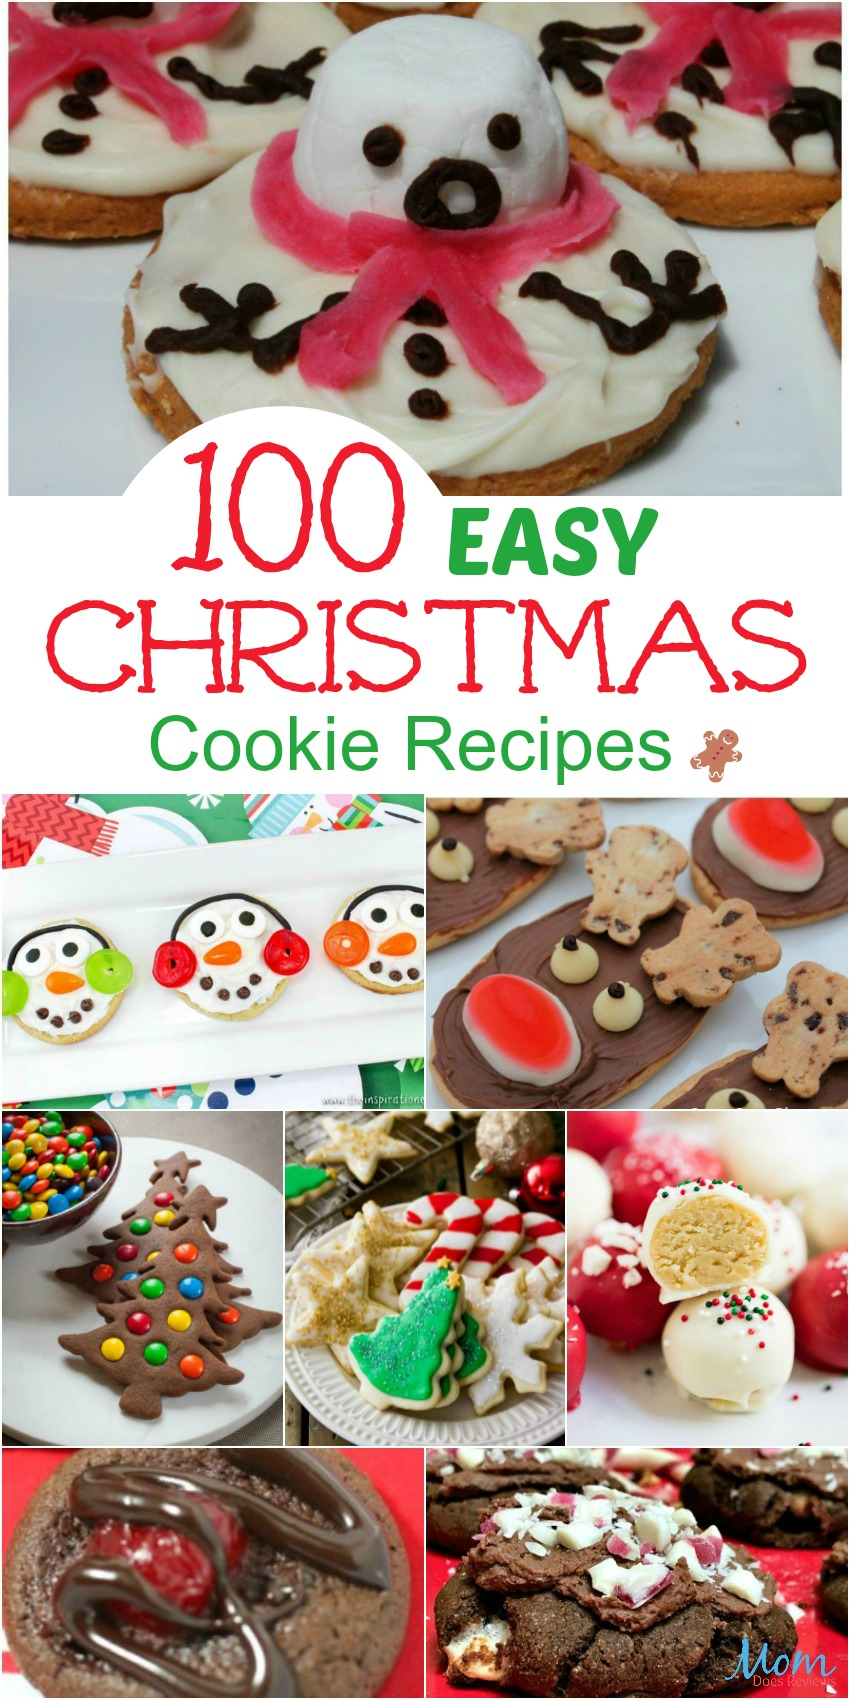 100 Easy Christmas Cookie Recipes You Must Try This Christmas